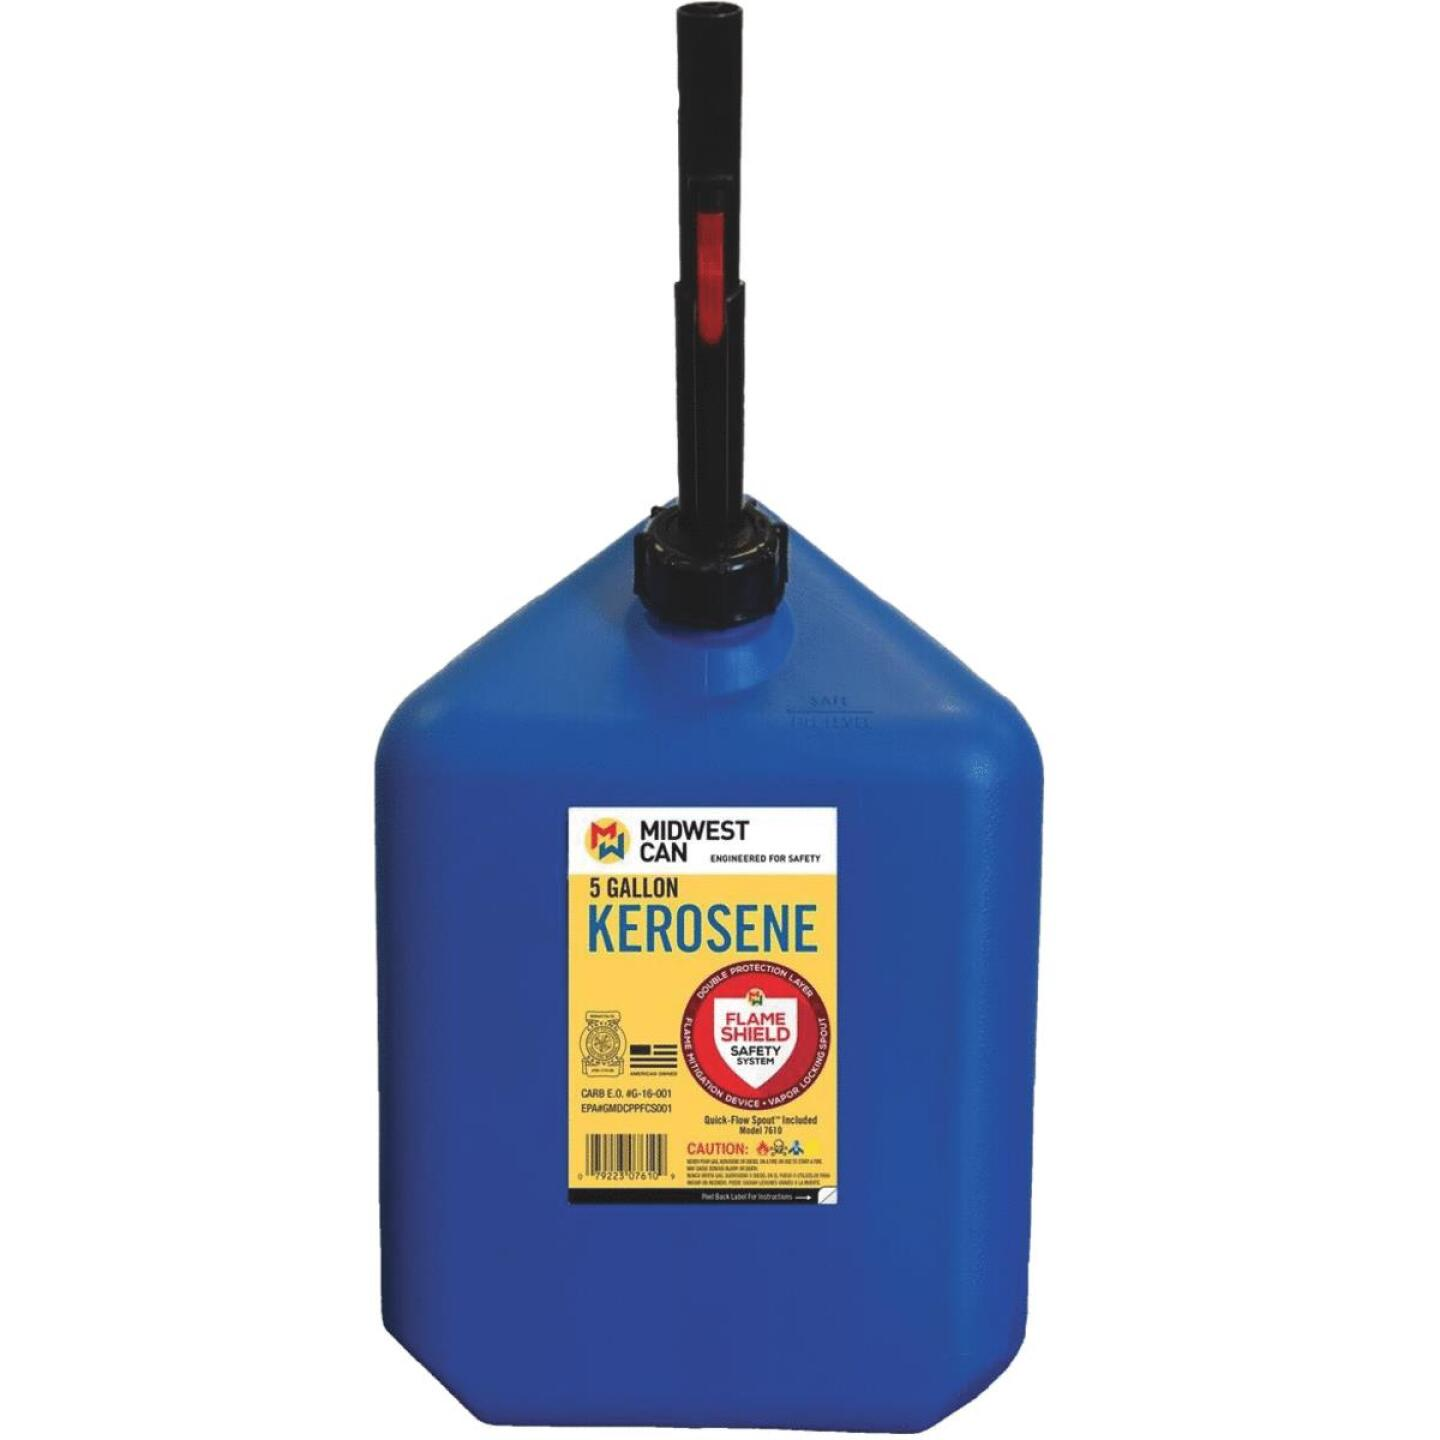 Midwest Can 5 Gal. Plastic Auto Shut Off Kerosene Fuel Can, Blue Image 1